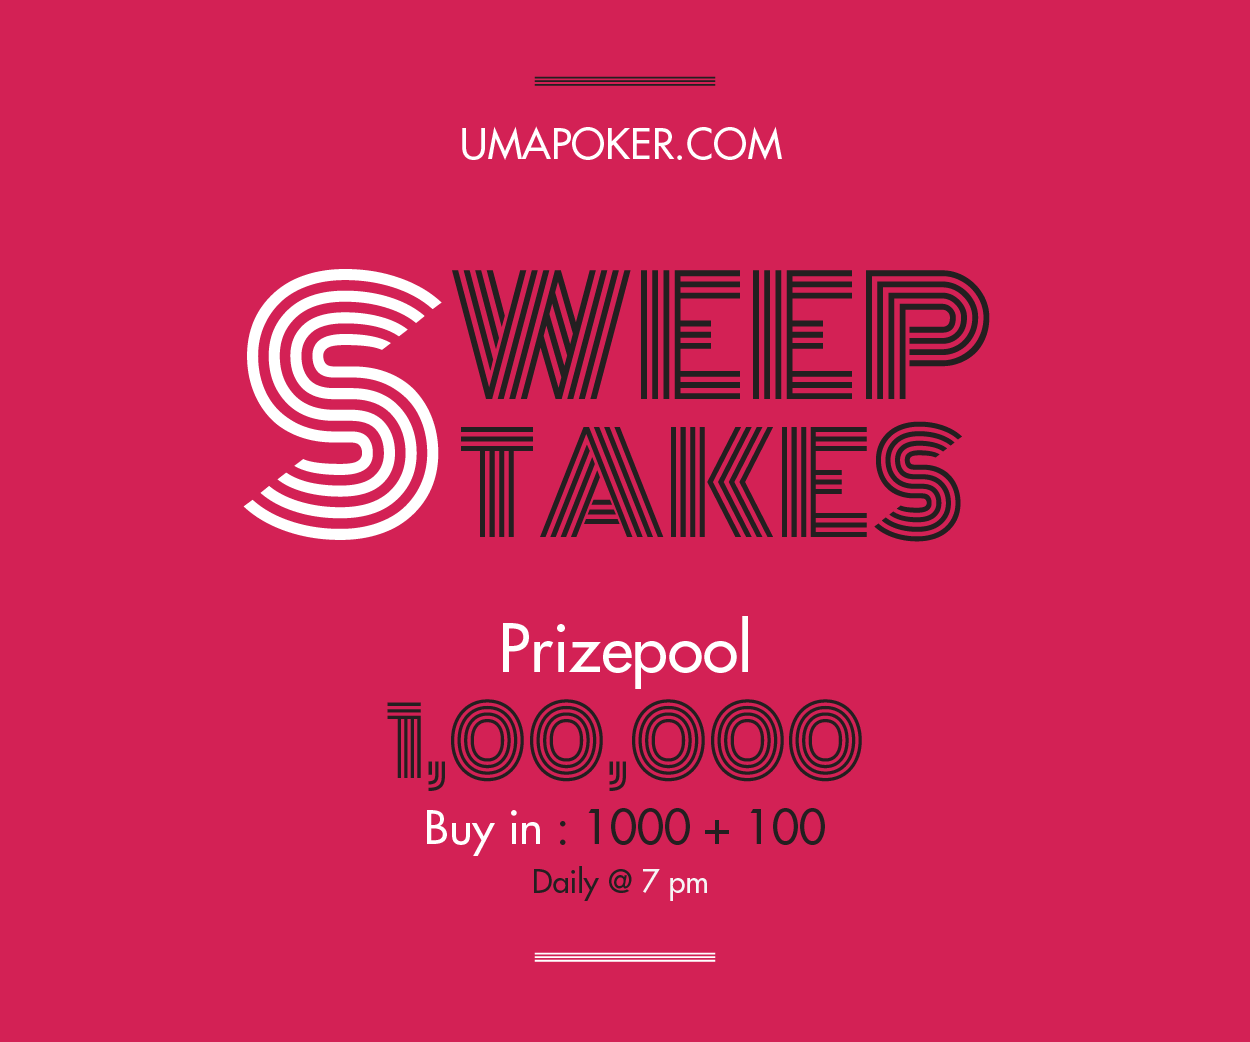 SweepStakes 300 by 250.png